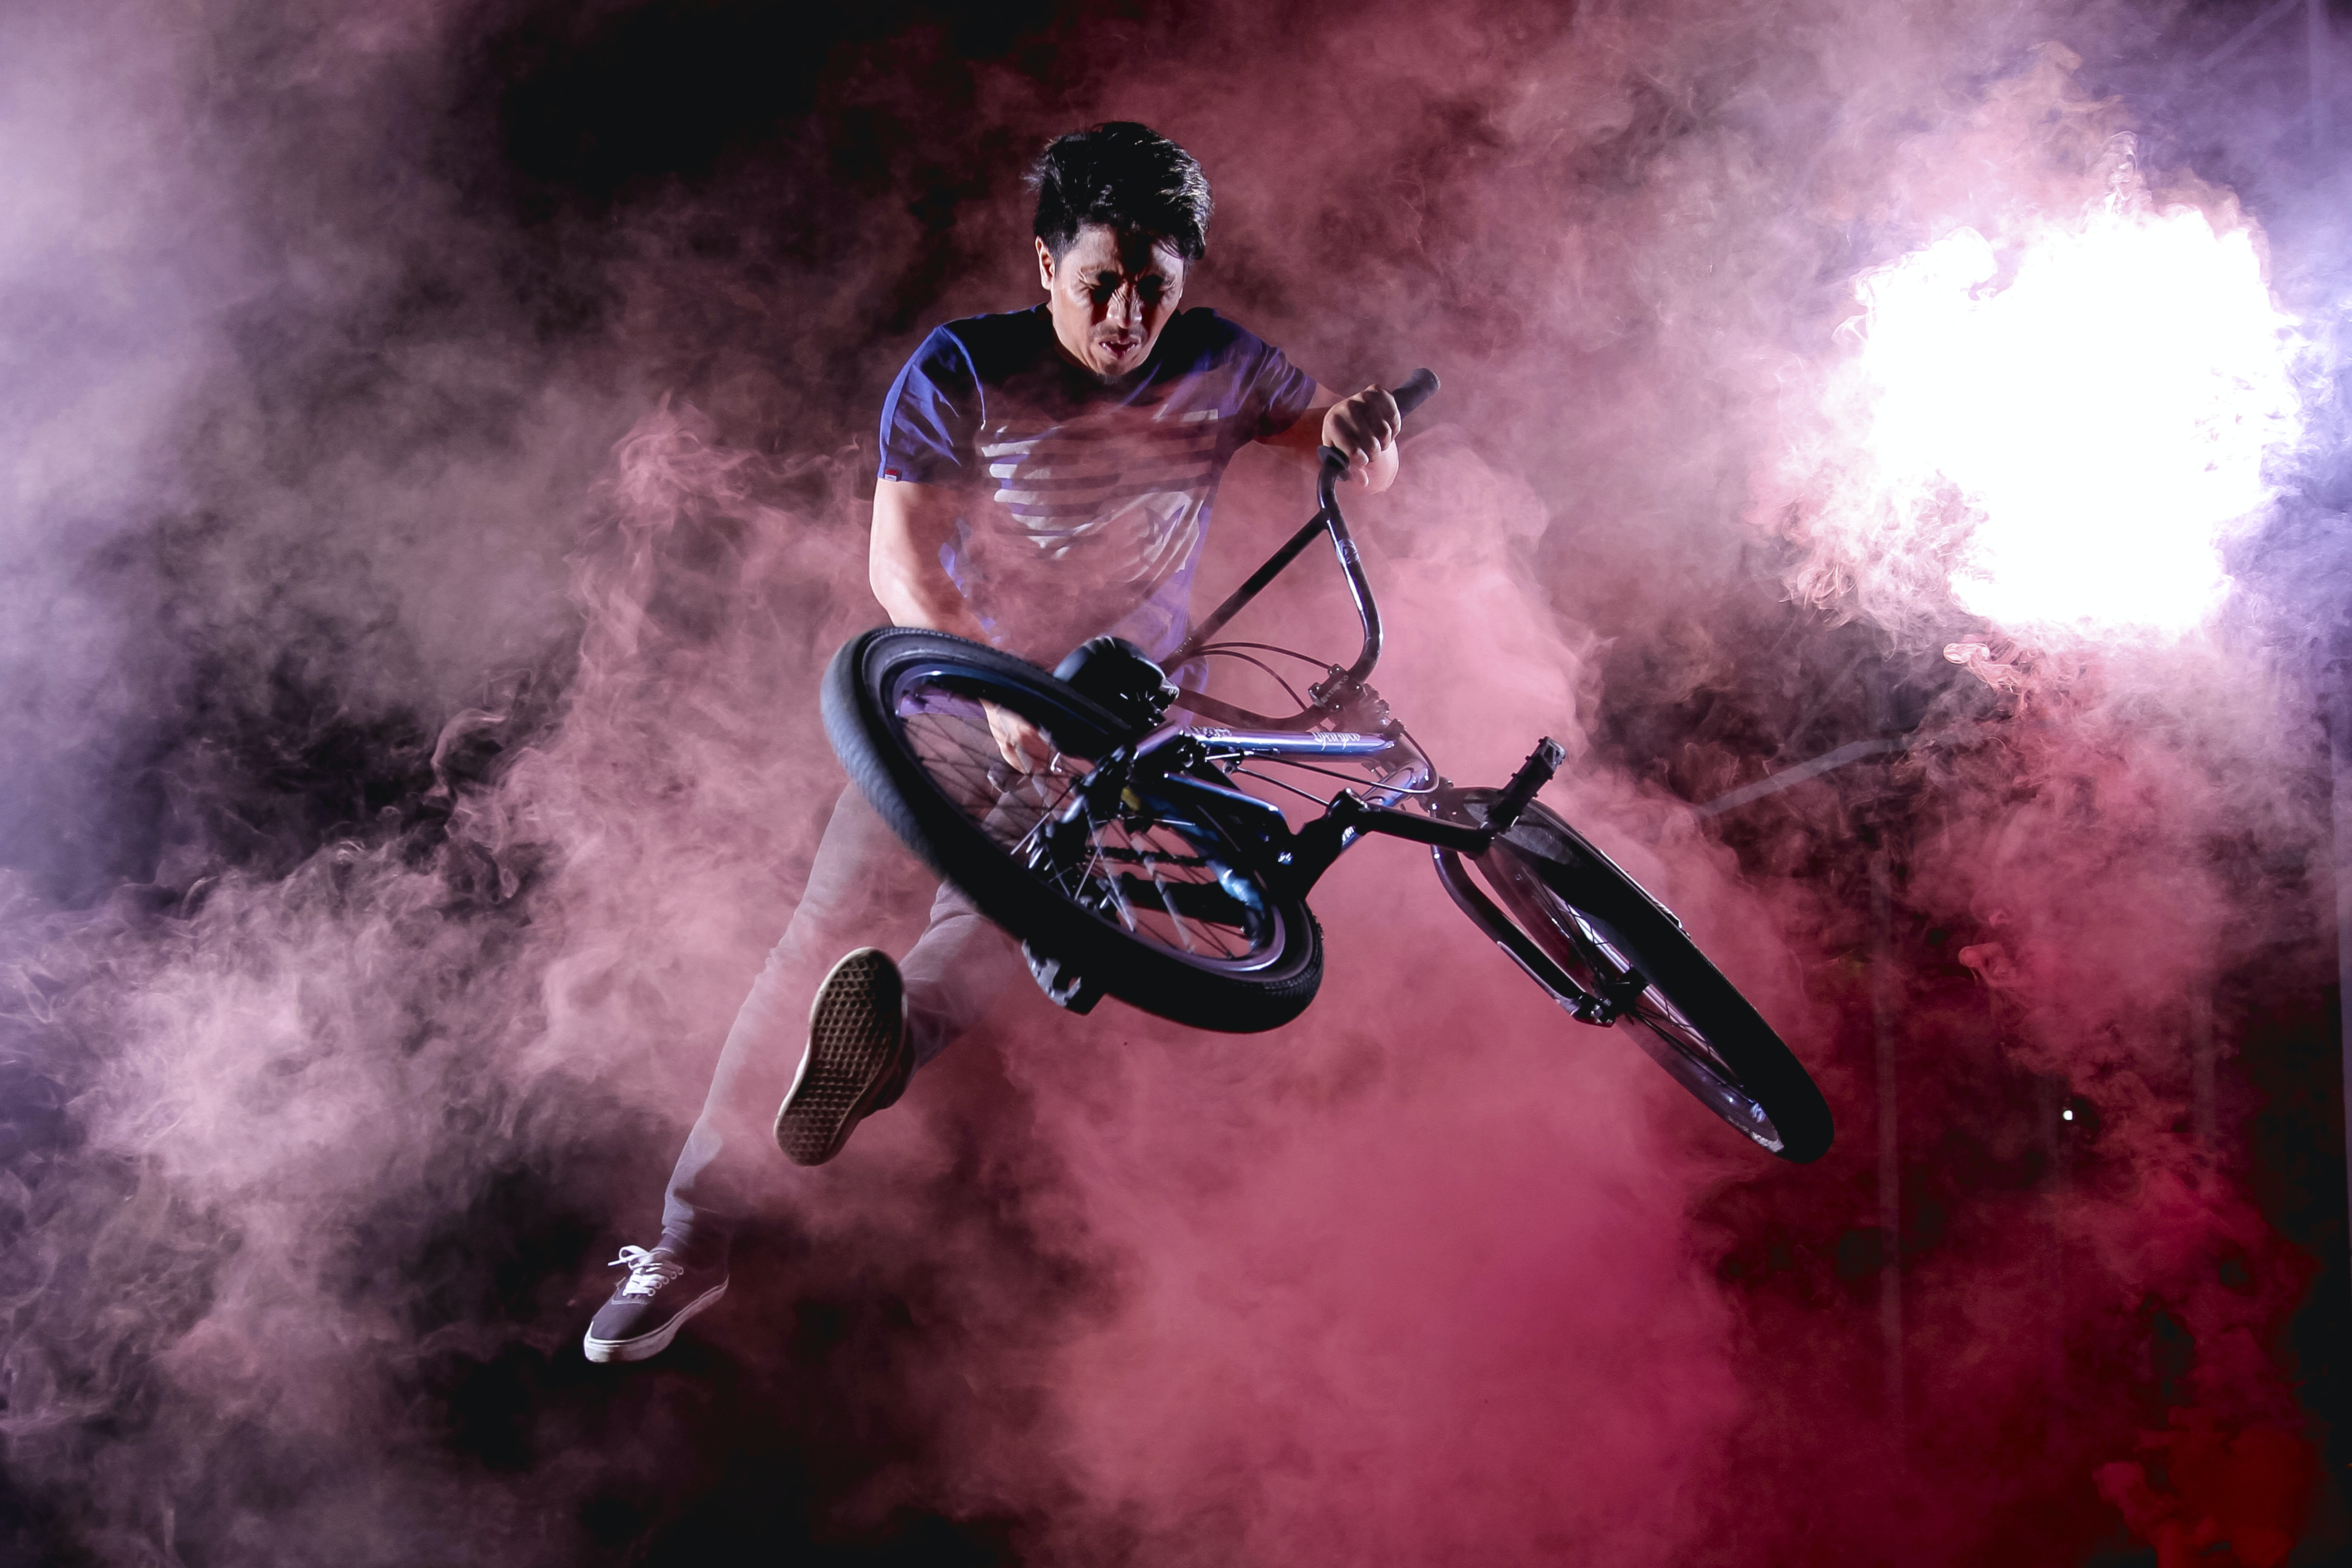 man doing bicycle trick surrounded with red fog